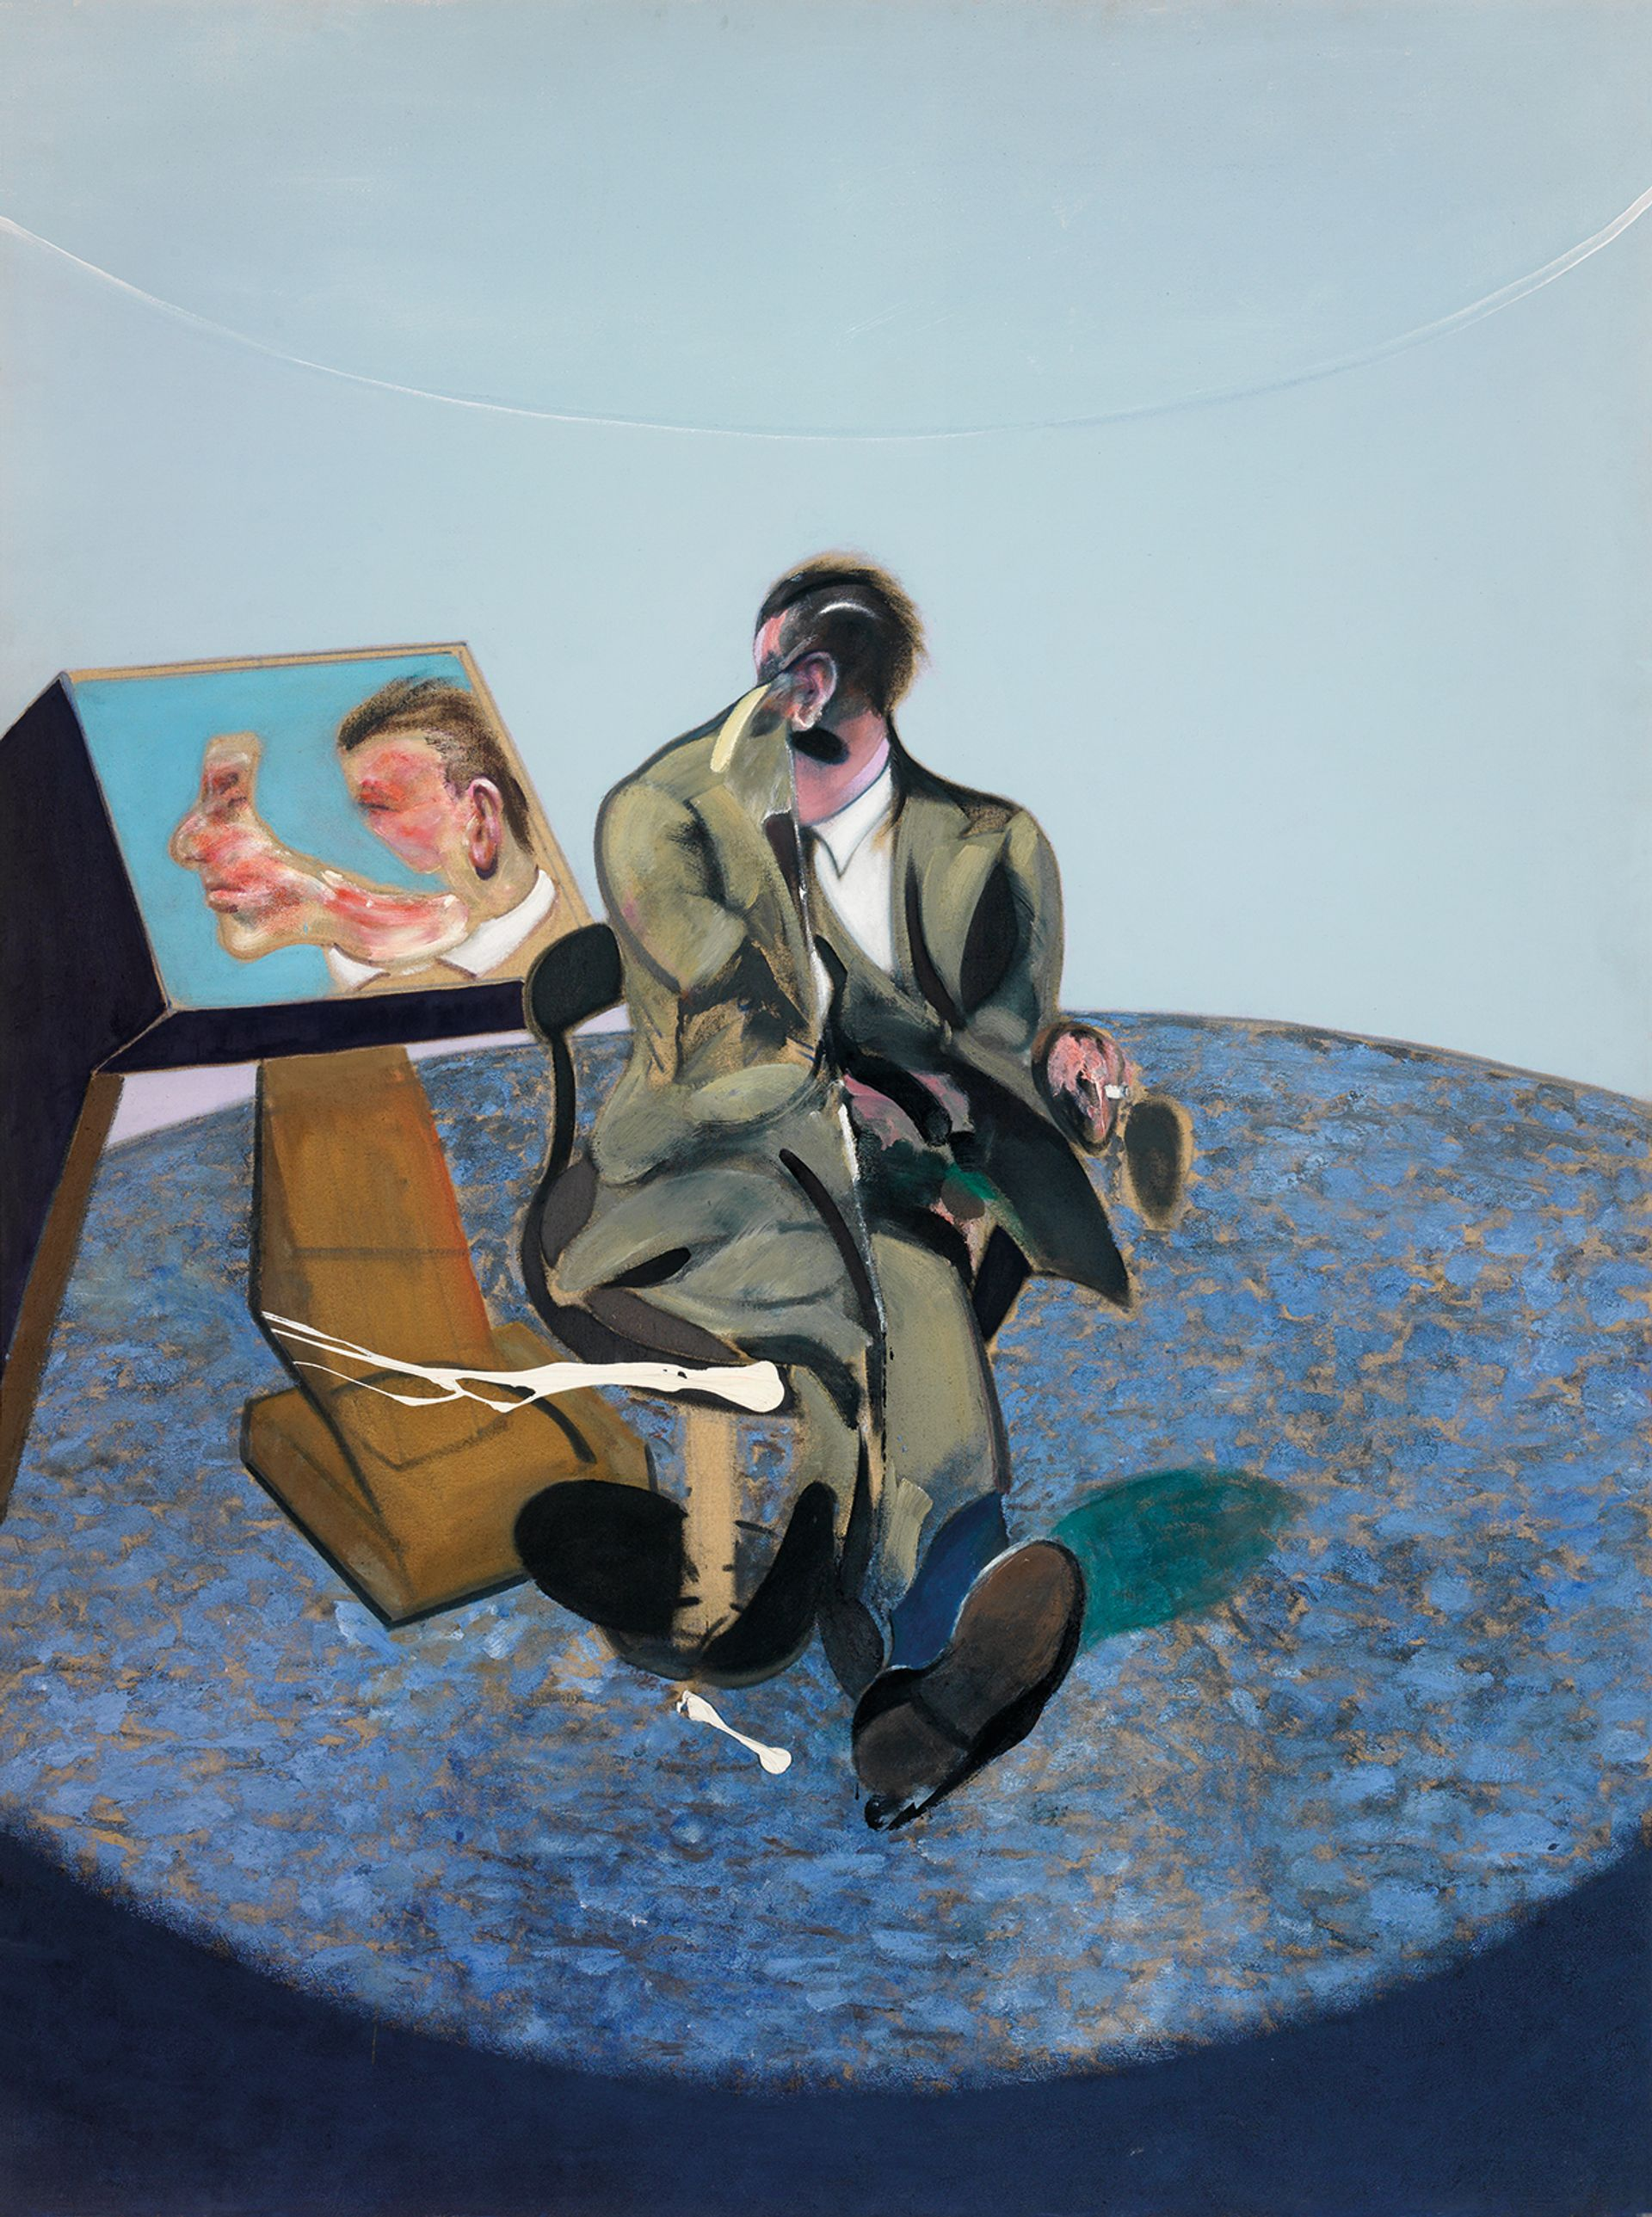 Brutal coupling in real life too:  Francis Bacon's Portrait of George Dyer in a Mirror (1968) Photo © Hugo Maertens